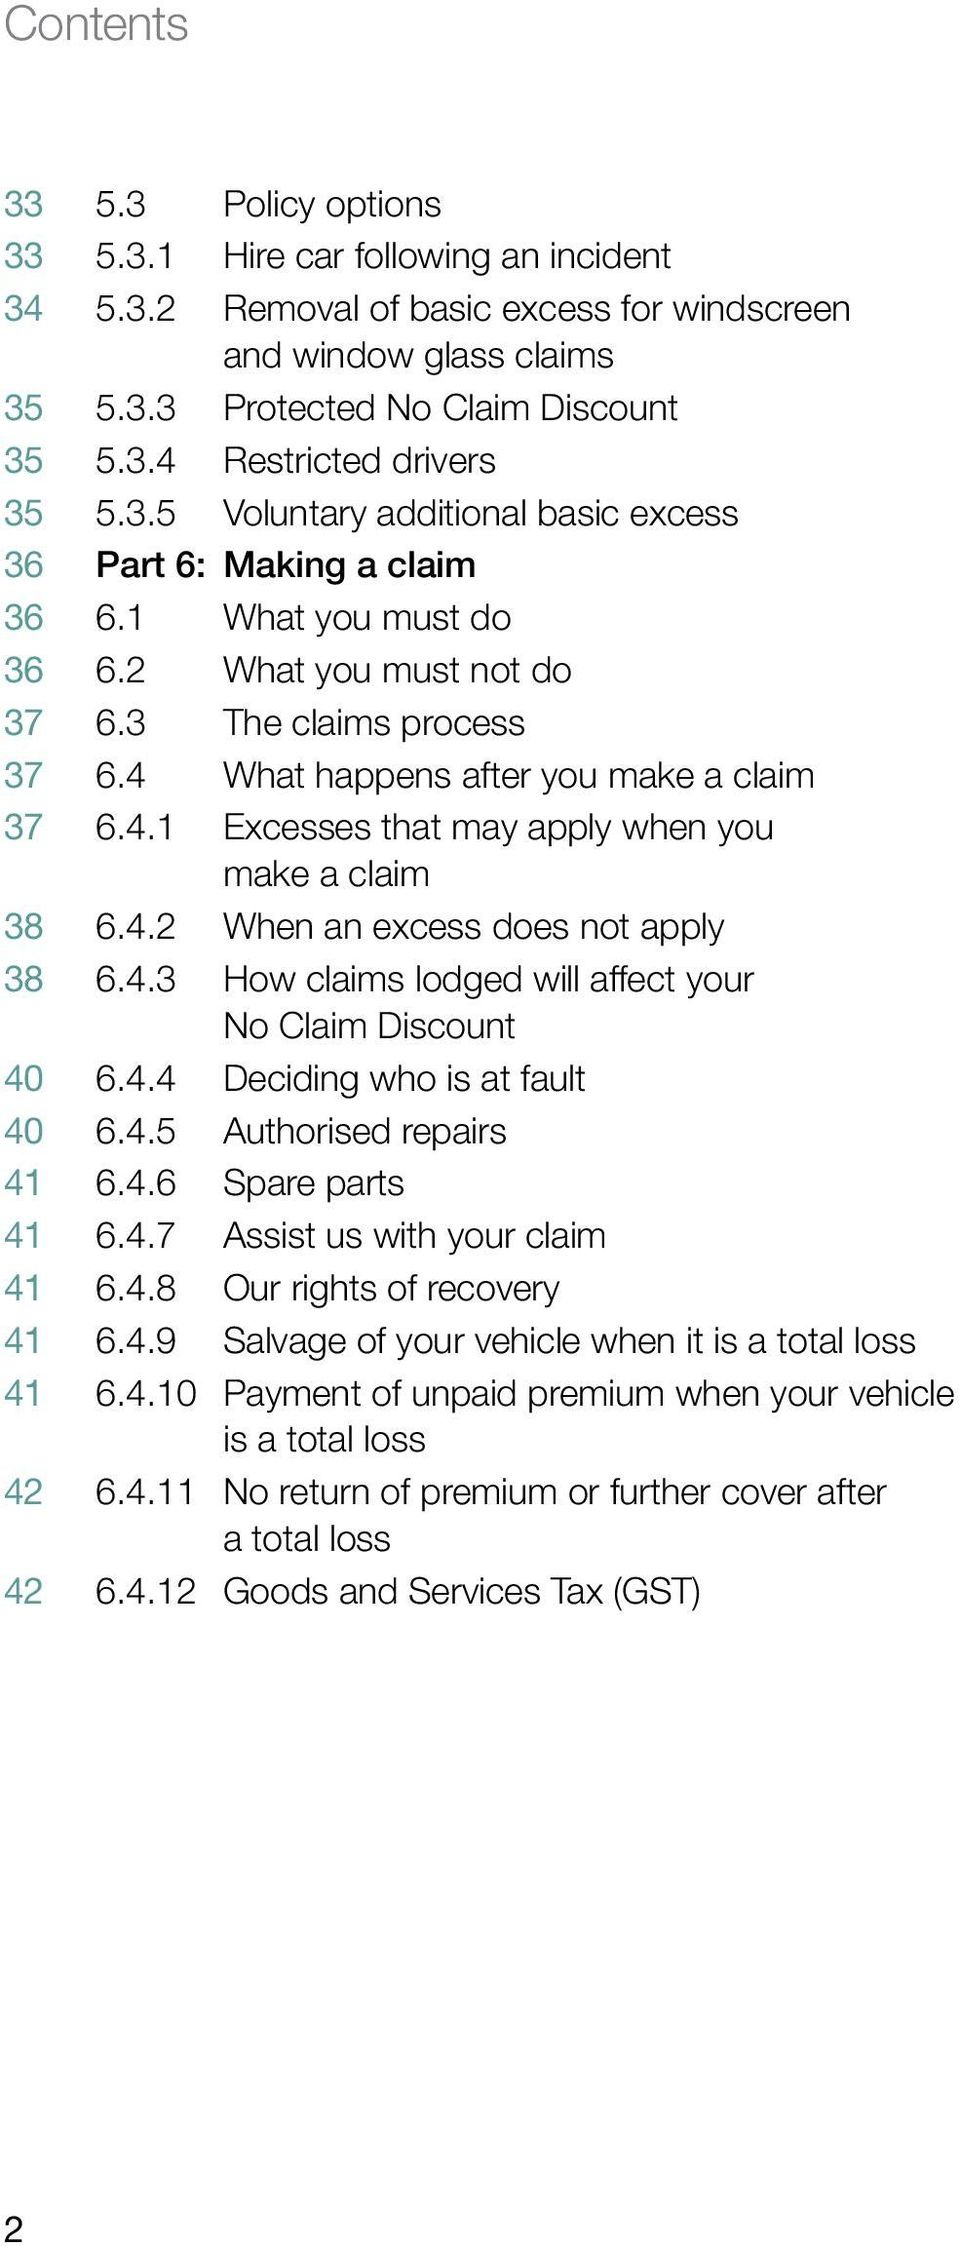 What happens after you make a claim 3 7 6.4.1 Excesses that may apply when you make a claim 3 8 6.4.2 When an excess does not apply 3 8 6.4.3 How claims lodged will affect your No Claim Discount 4 0 6.